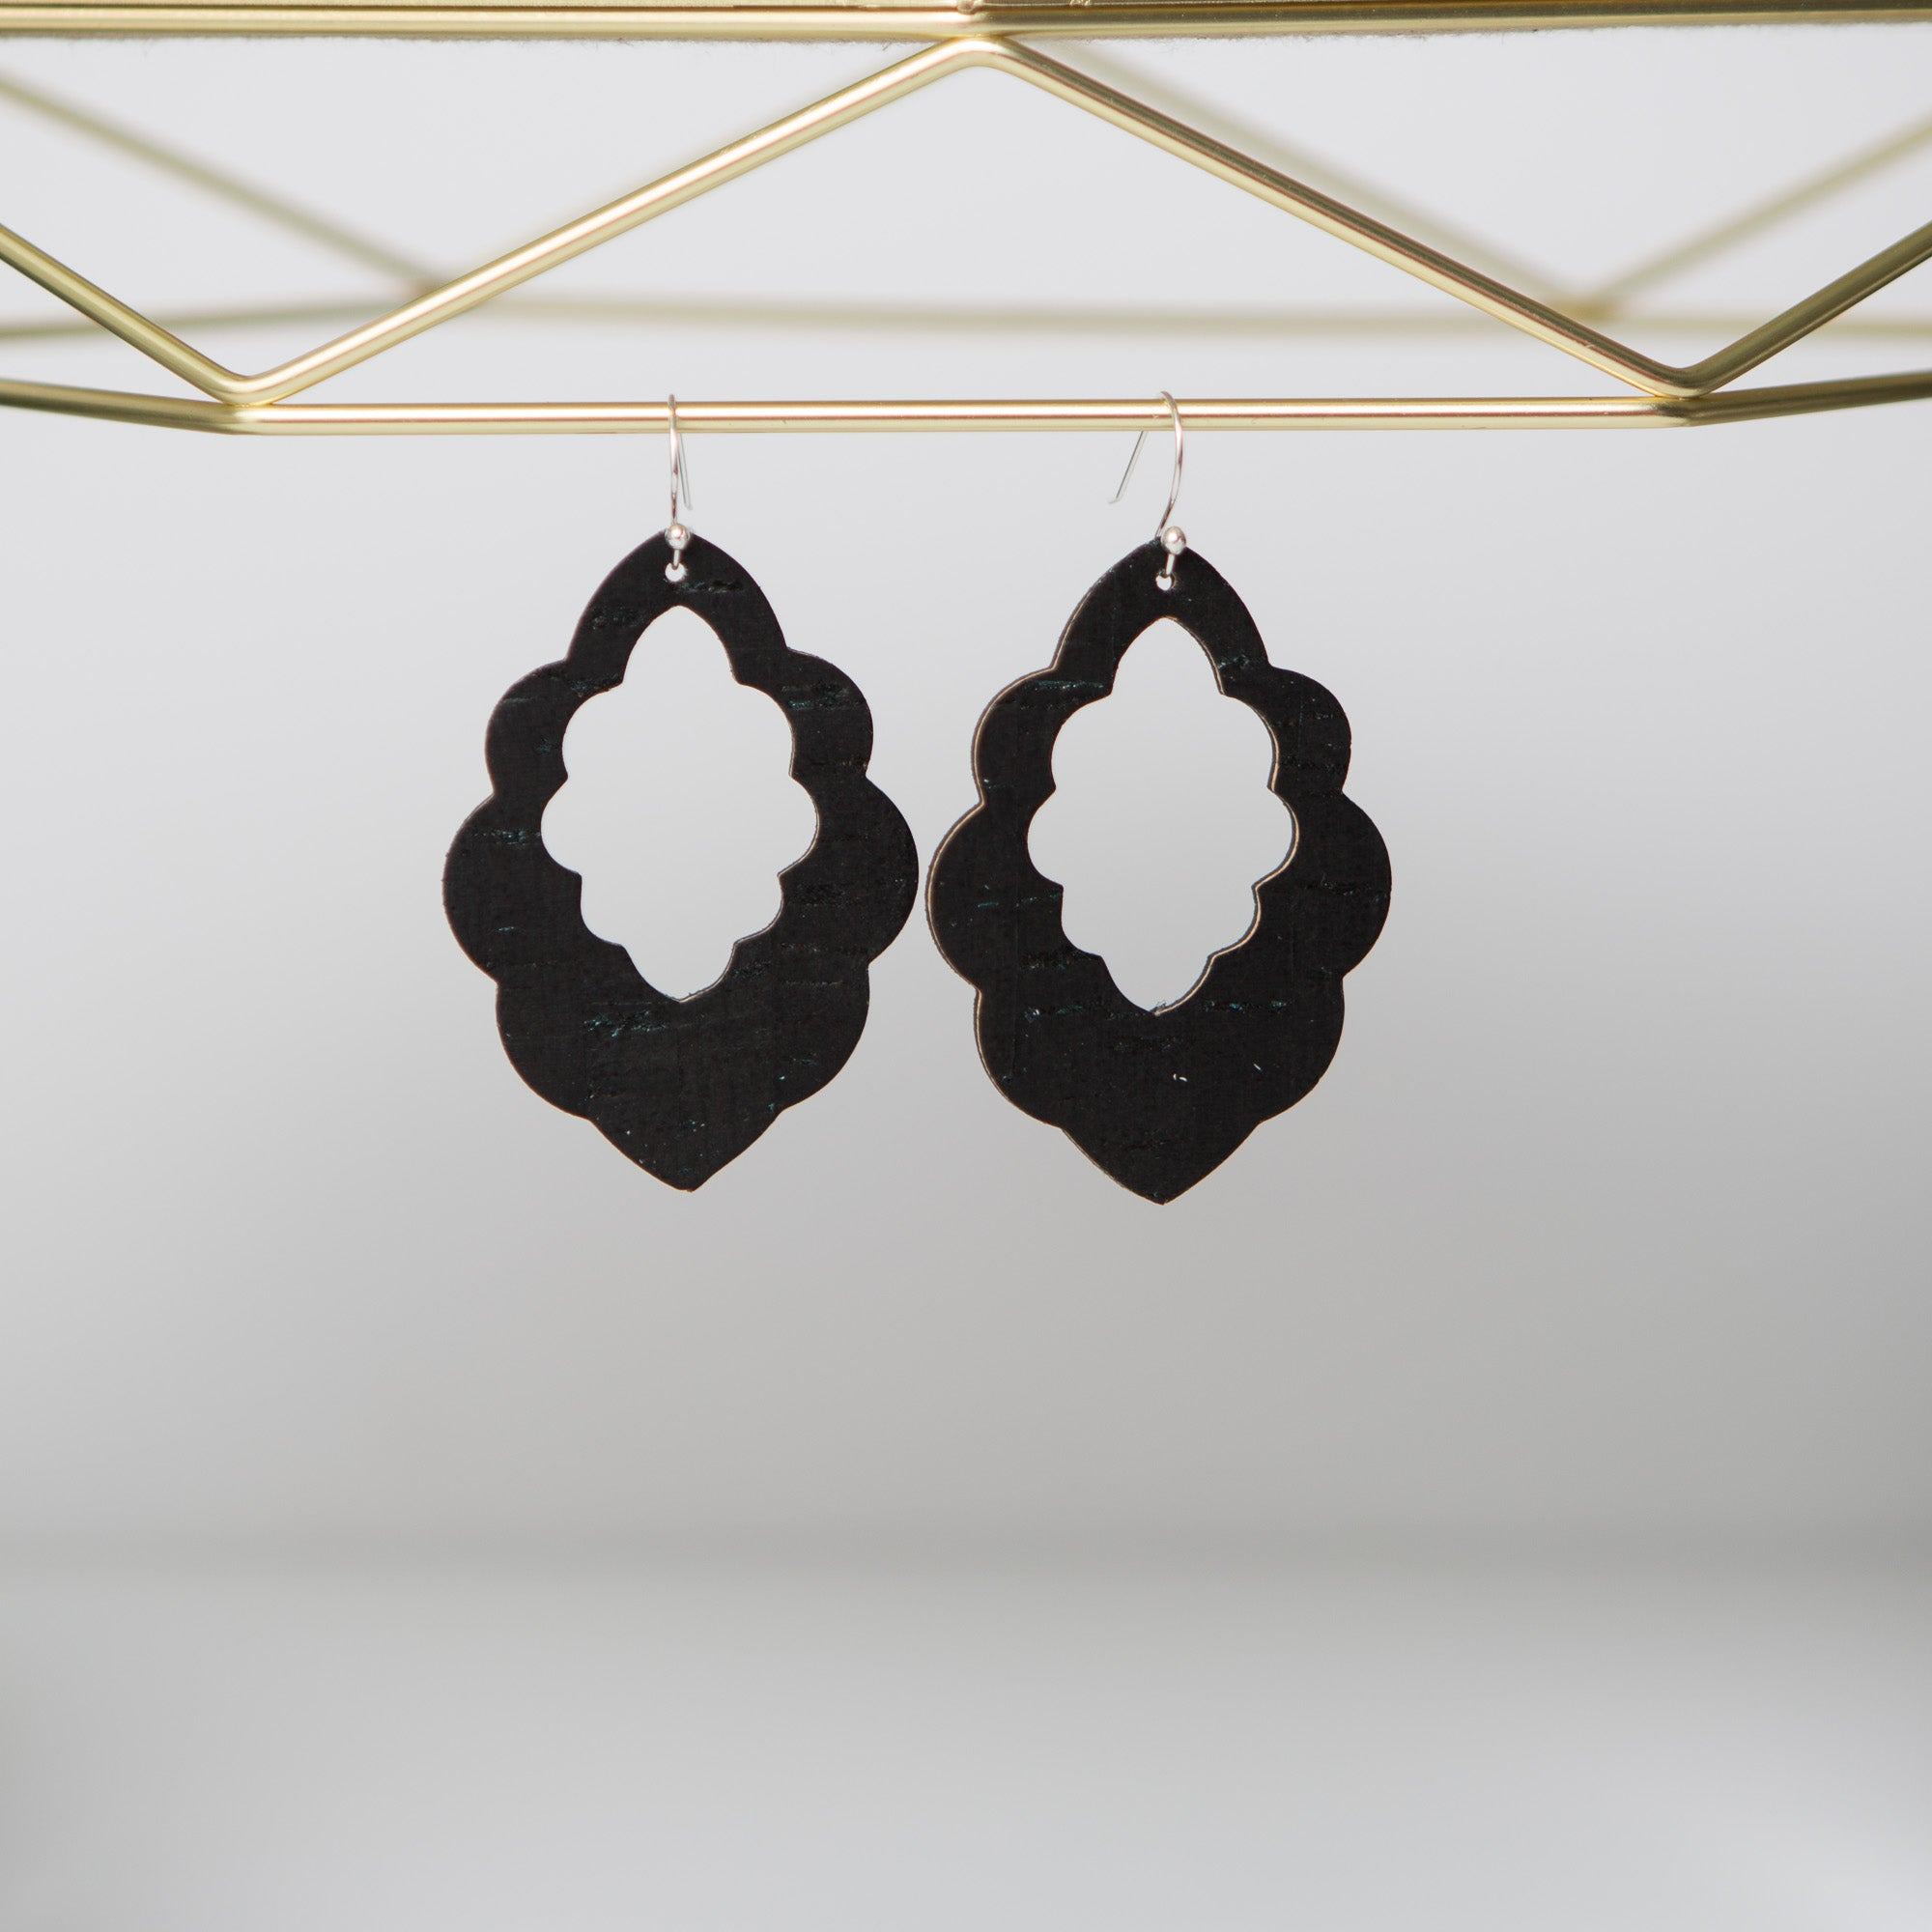 Scalloped Earrings (multiple leather options available)